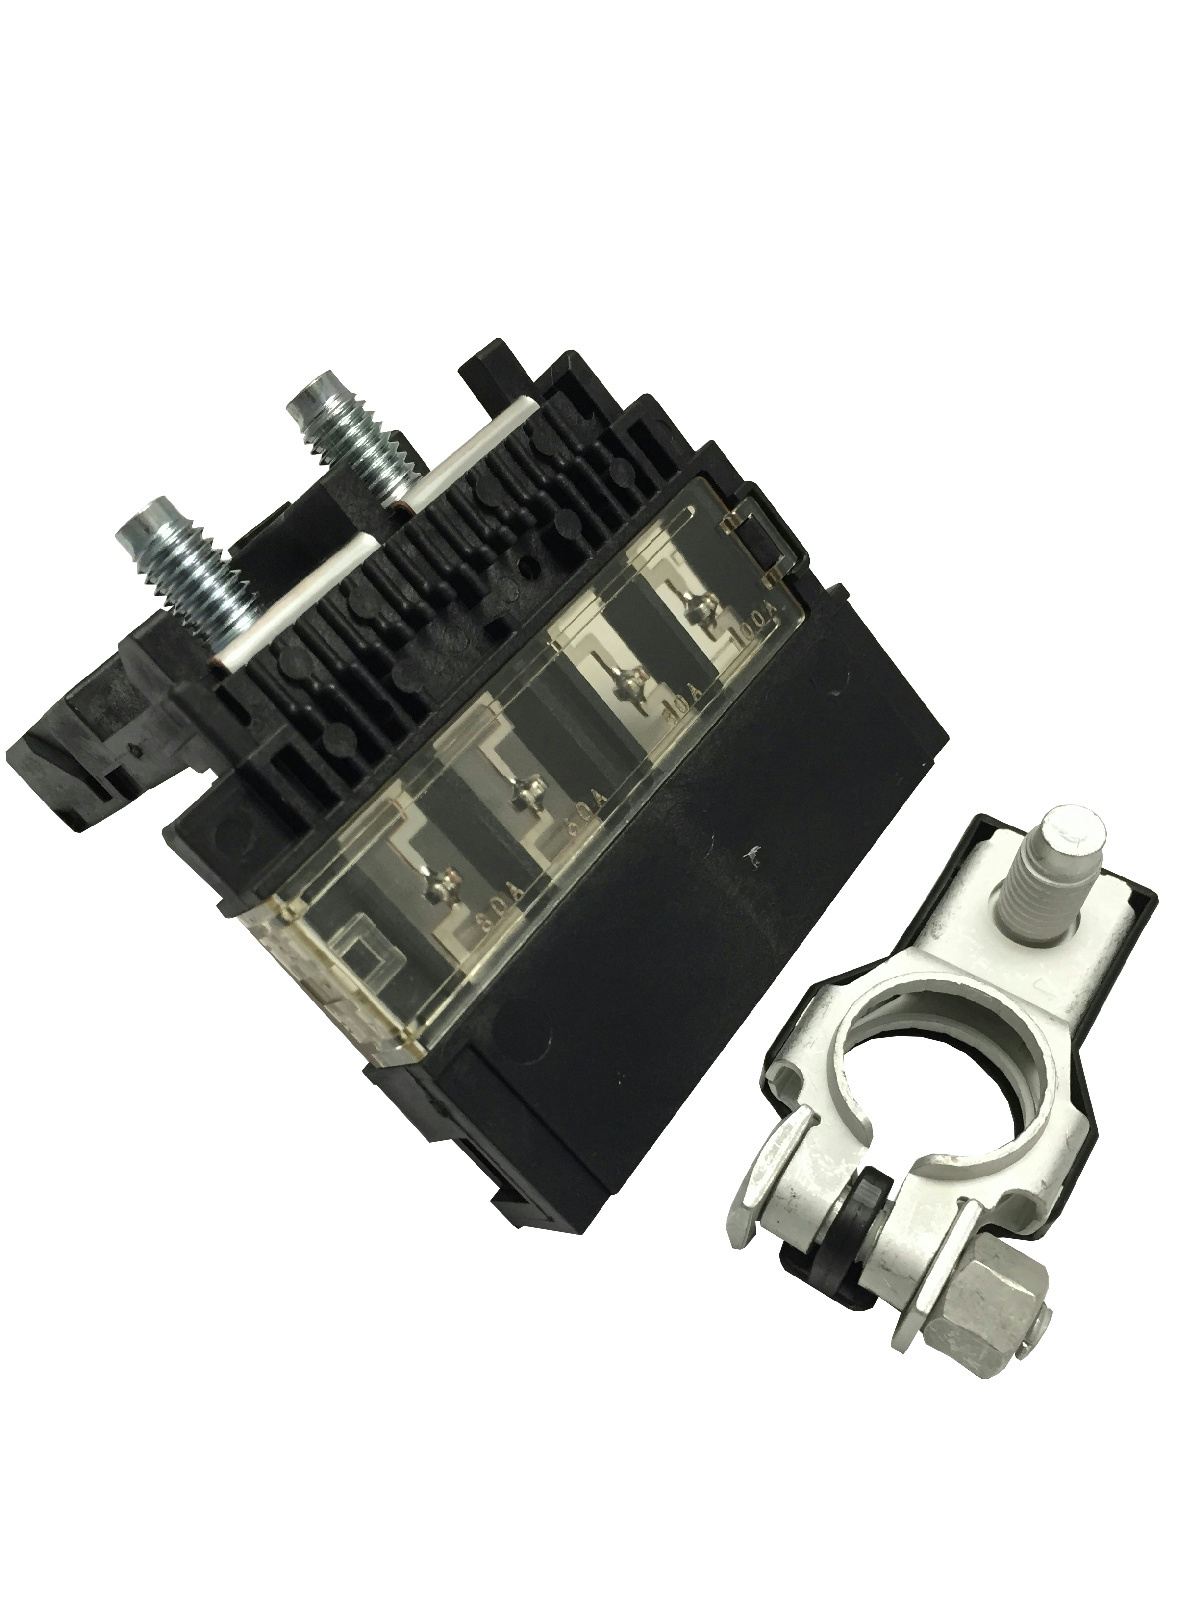 Fuse Box Cable Warranty Real Wiring Diagram Battery And Nissan Genuine Oem Fusible Link Positive Automotive Block Tap